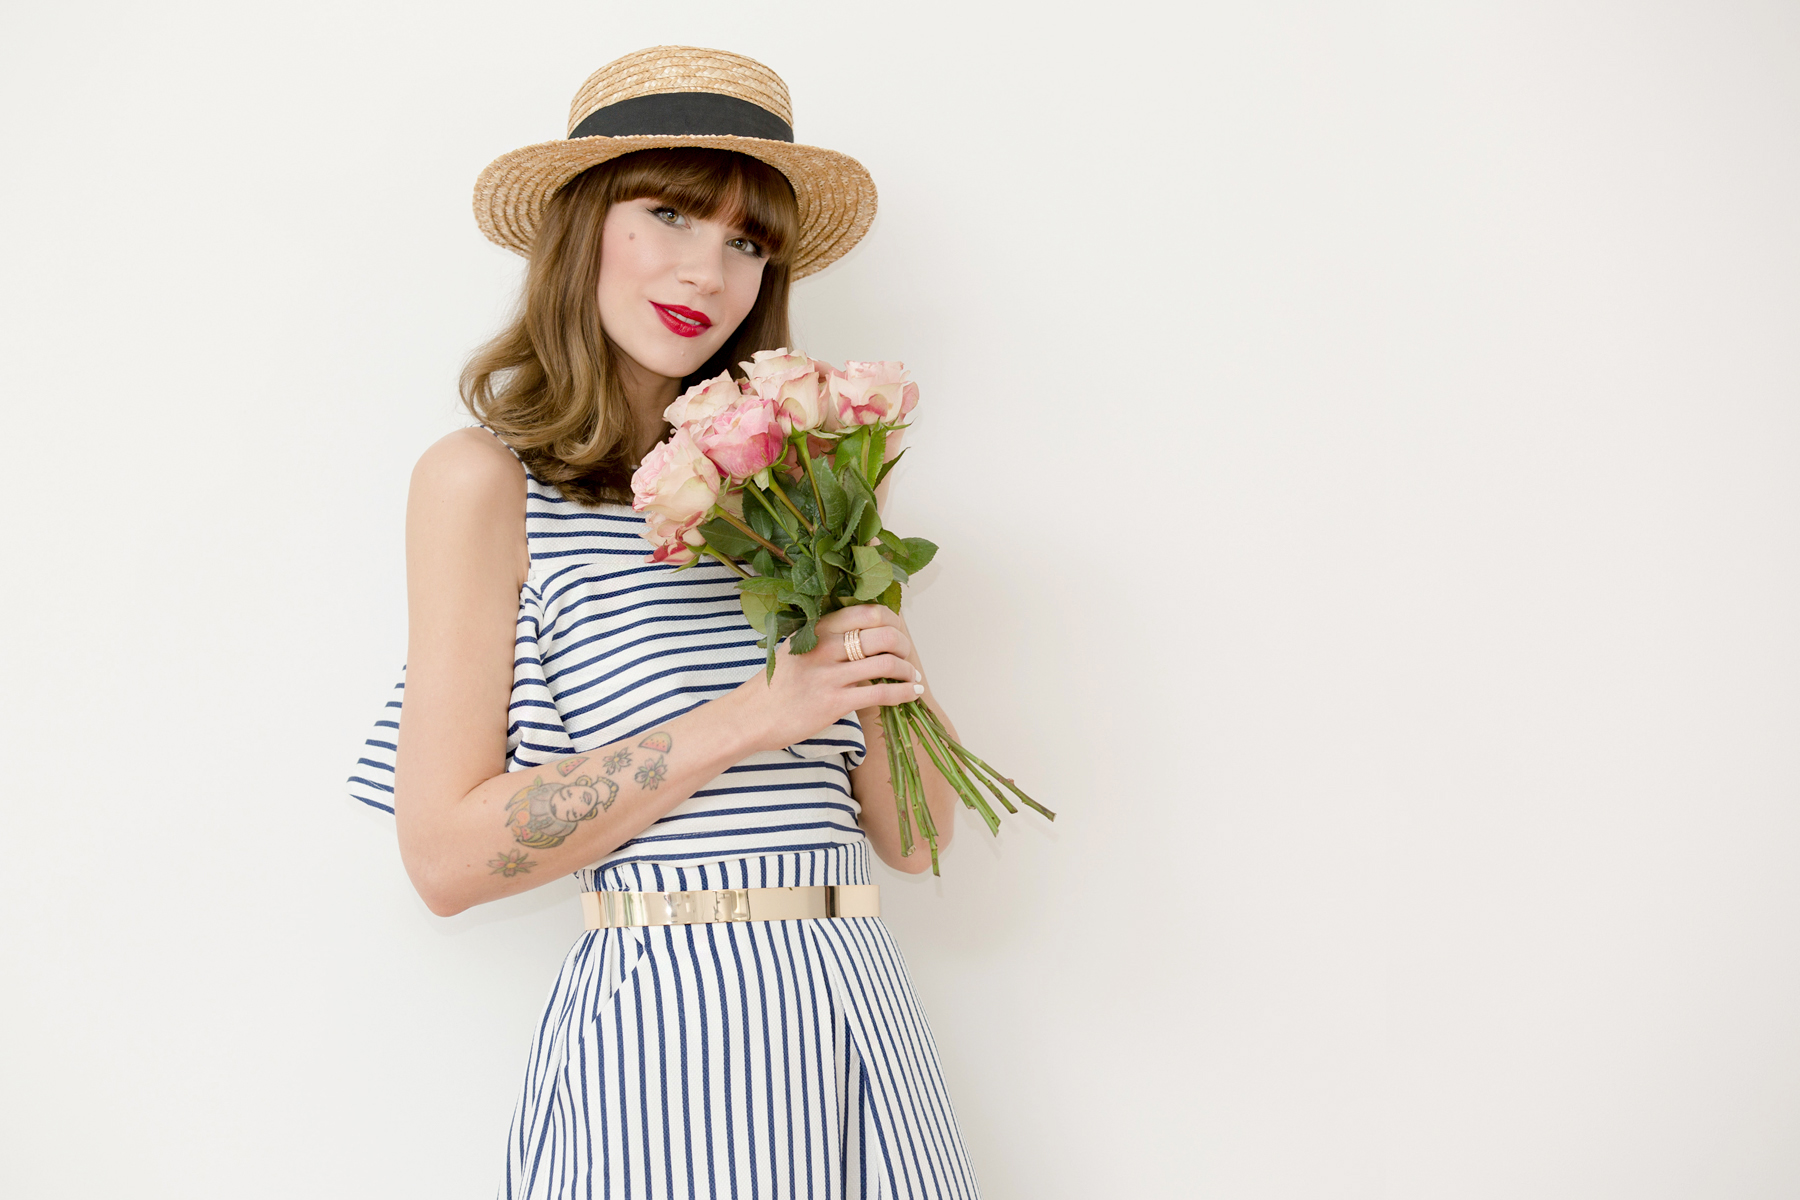 shopbop striped outfit styling topshop roses valentines day valentinstag hut 50s 60s cute girly girl bangs brunette red lips ootd outfit fashionblogger ricarda schernus cats & dogs blog 5